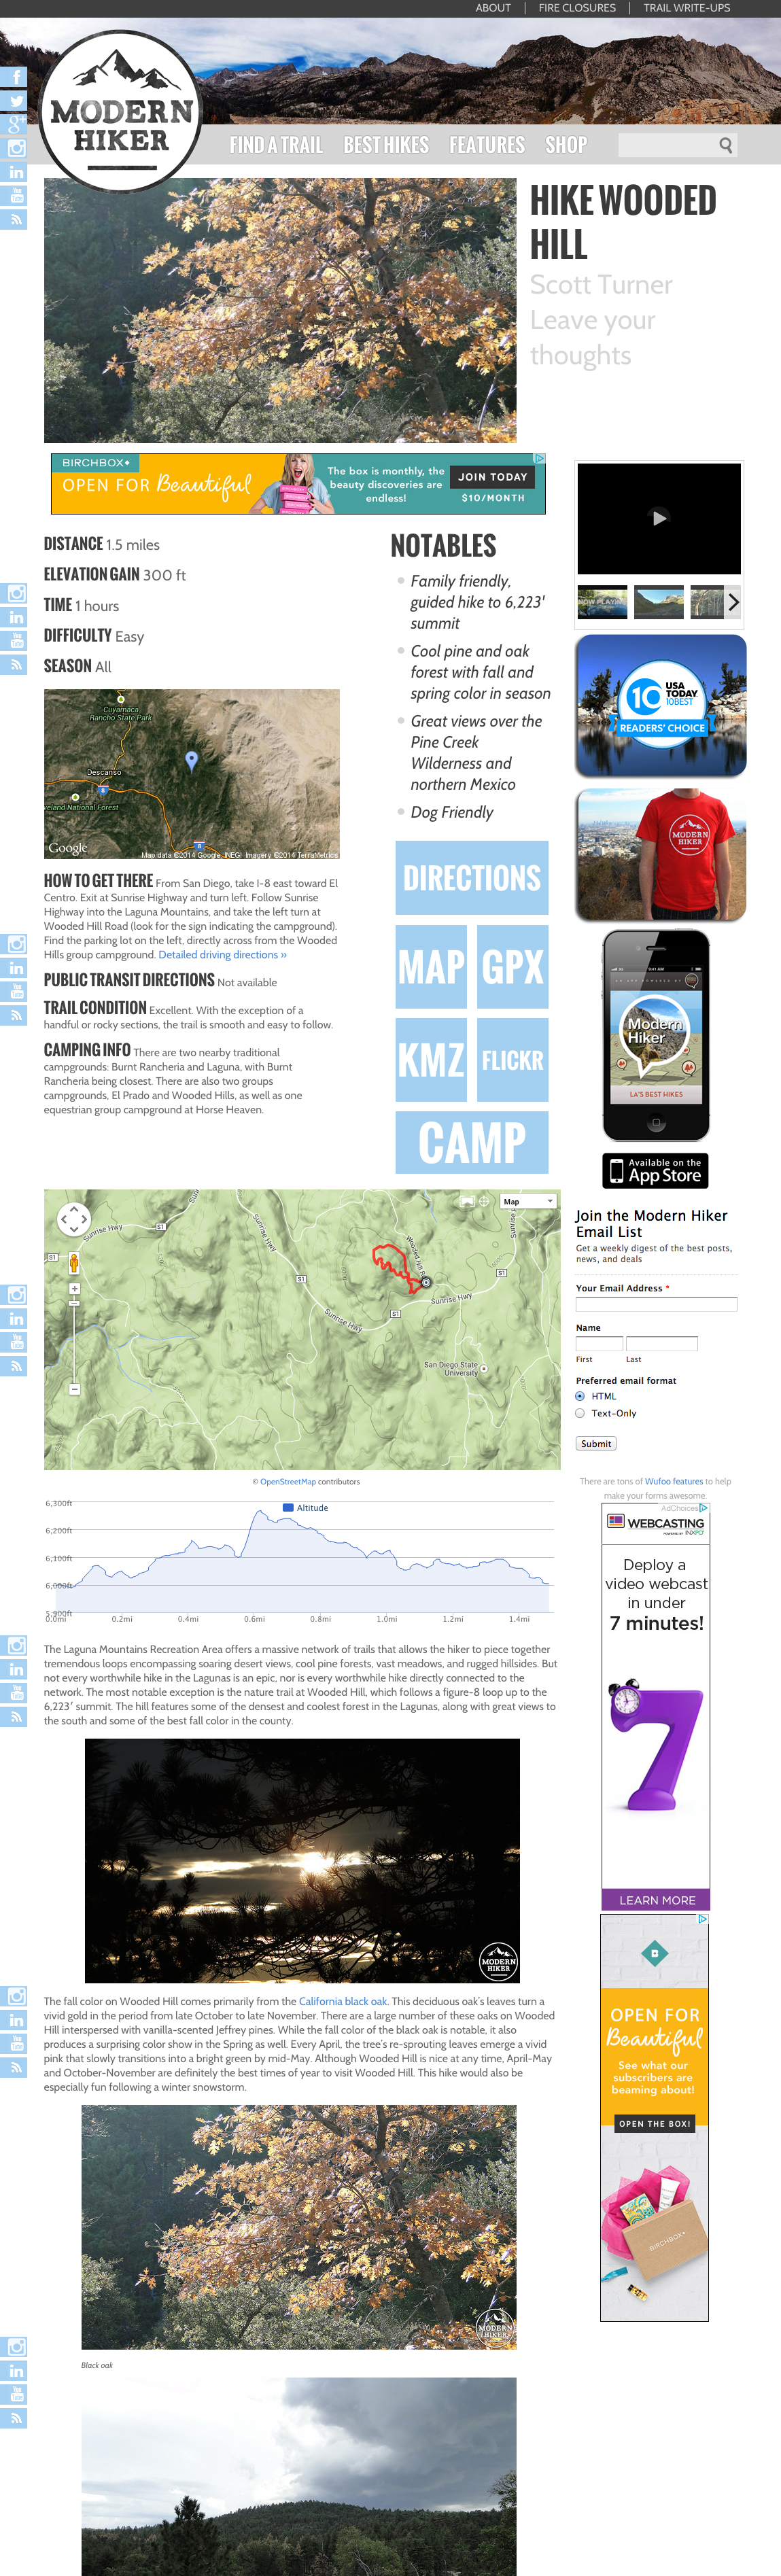 See elements on details page. Map, pics, etc... http://www.modernhiker.com/